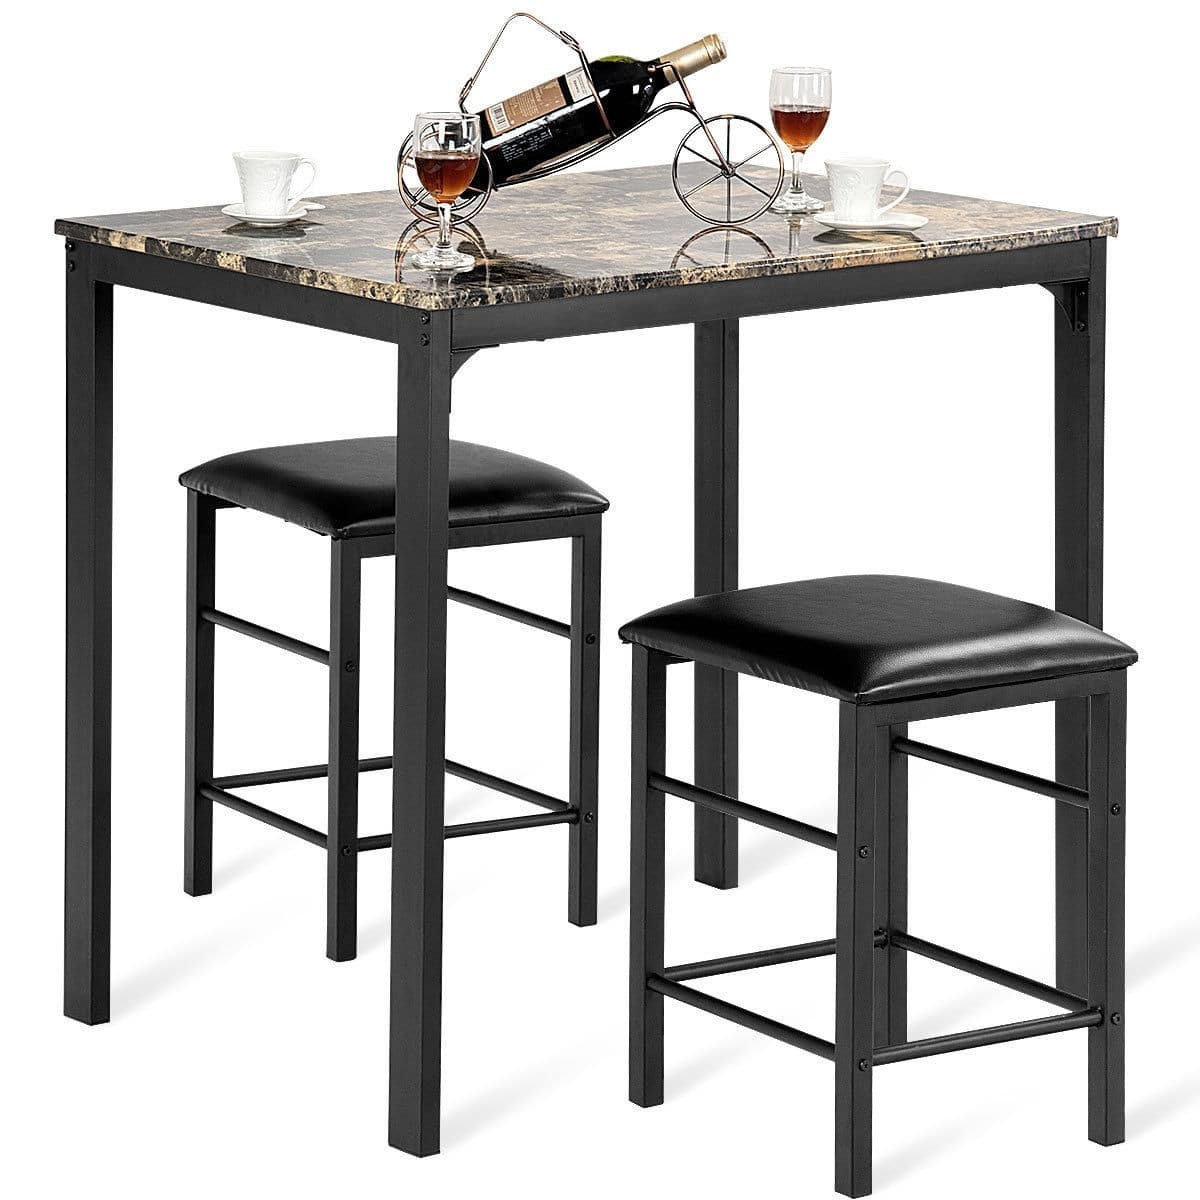 3 Pcs Counter Height Dining Set Faux Marble Table - $82.95 + Free Shipping